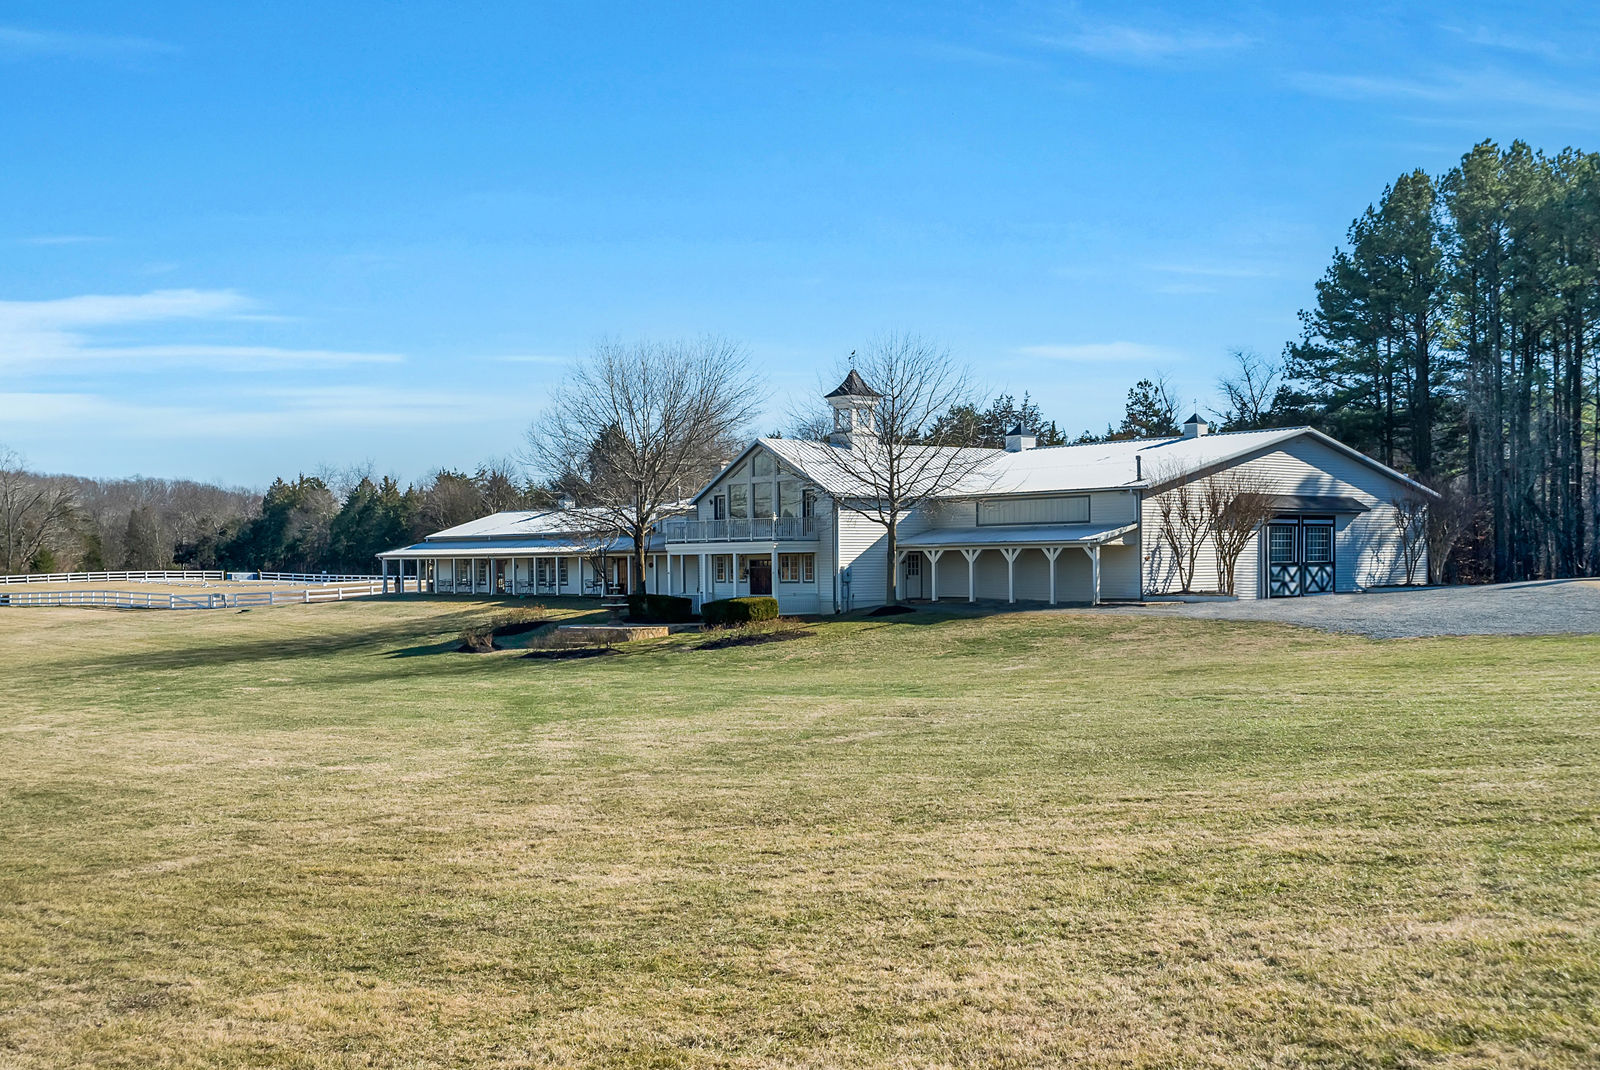 The property also includes an 11,200-square-foot indoor riding arena, two show arenas and stables and offers boarding and training. (Courtesy Auction Markets LLC)